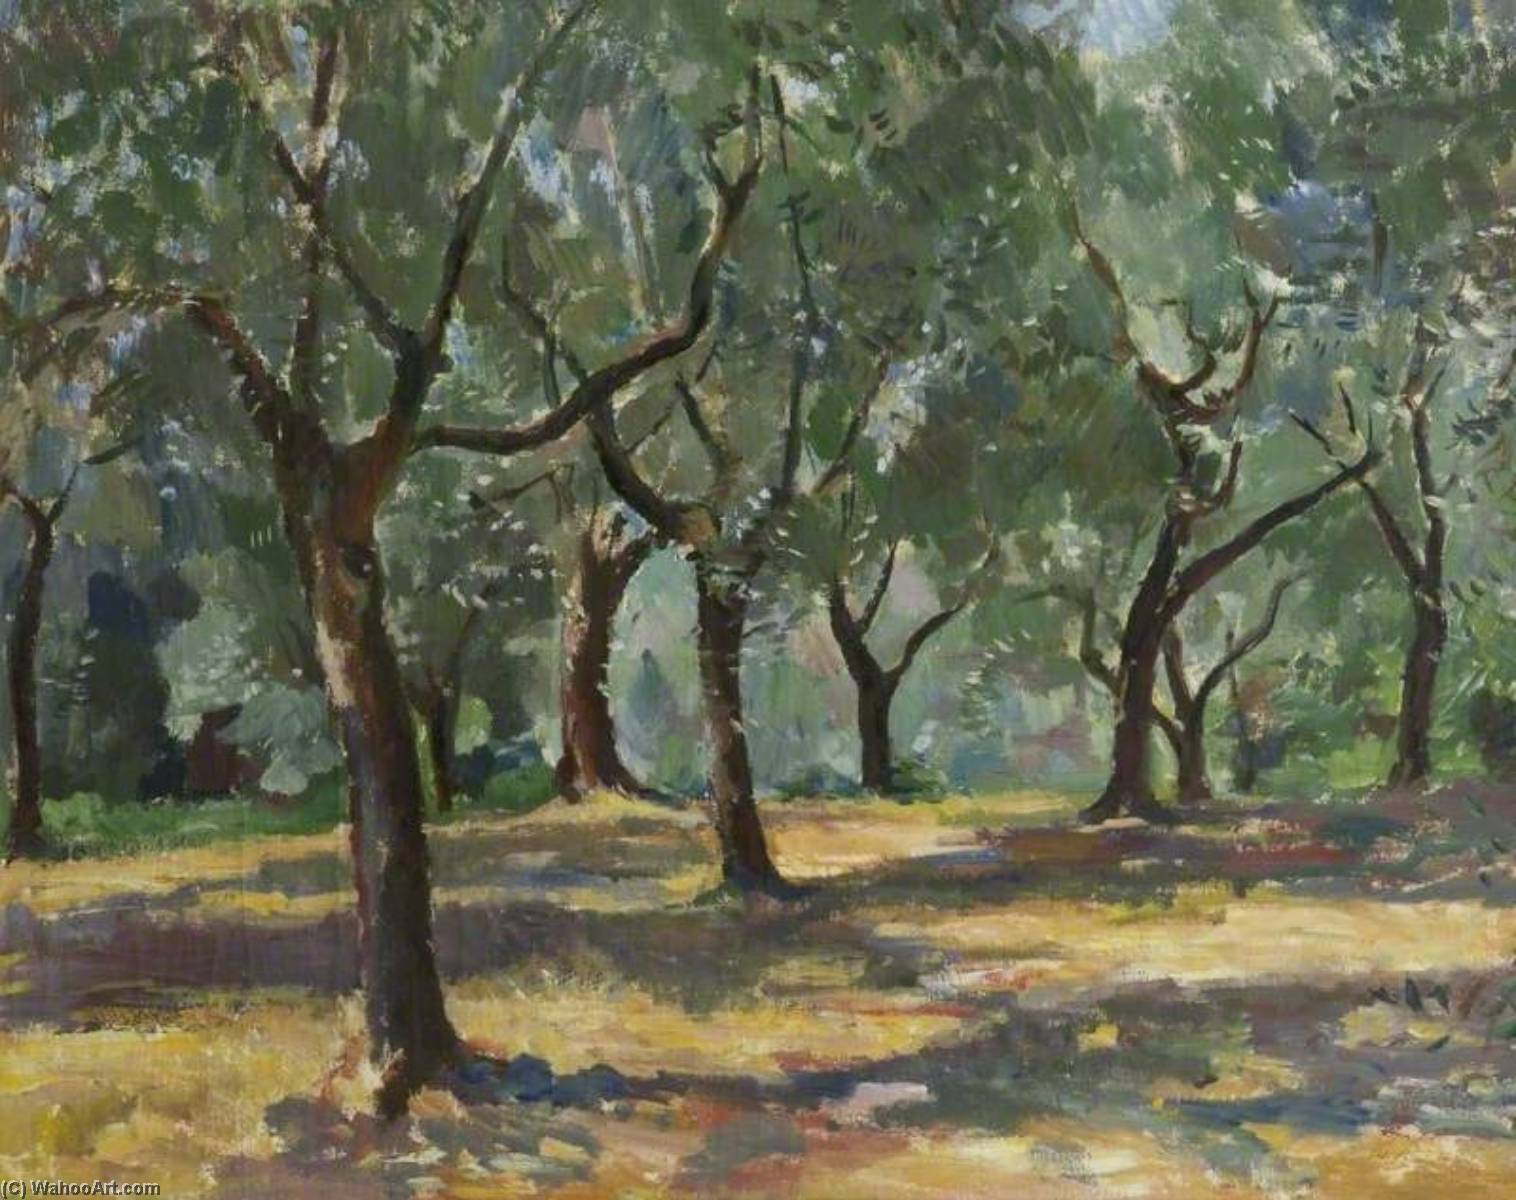 Wood, Hungary, Oil On Canvas by Theodor Kern